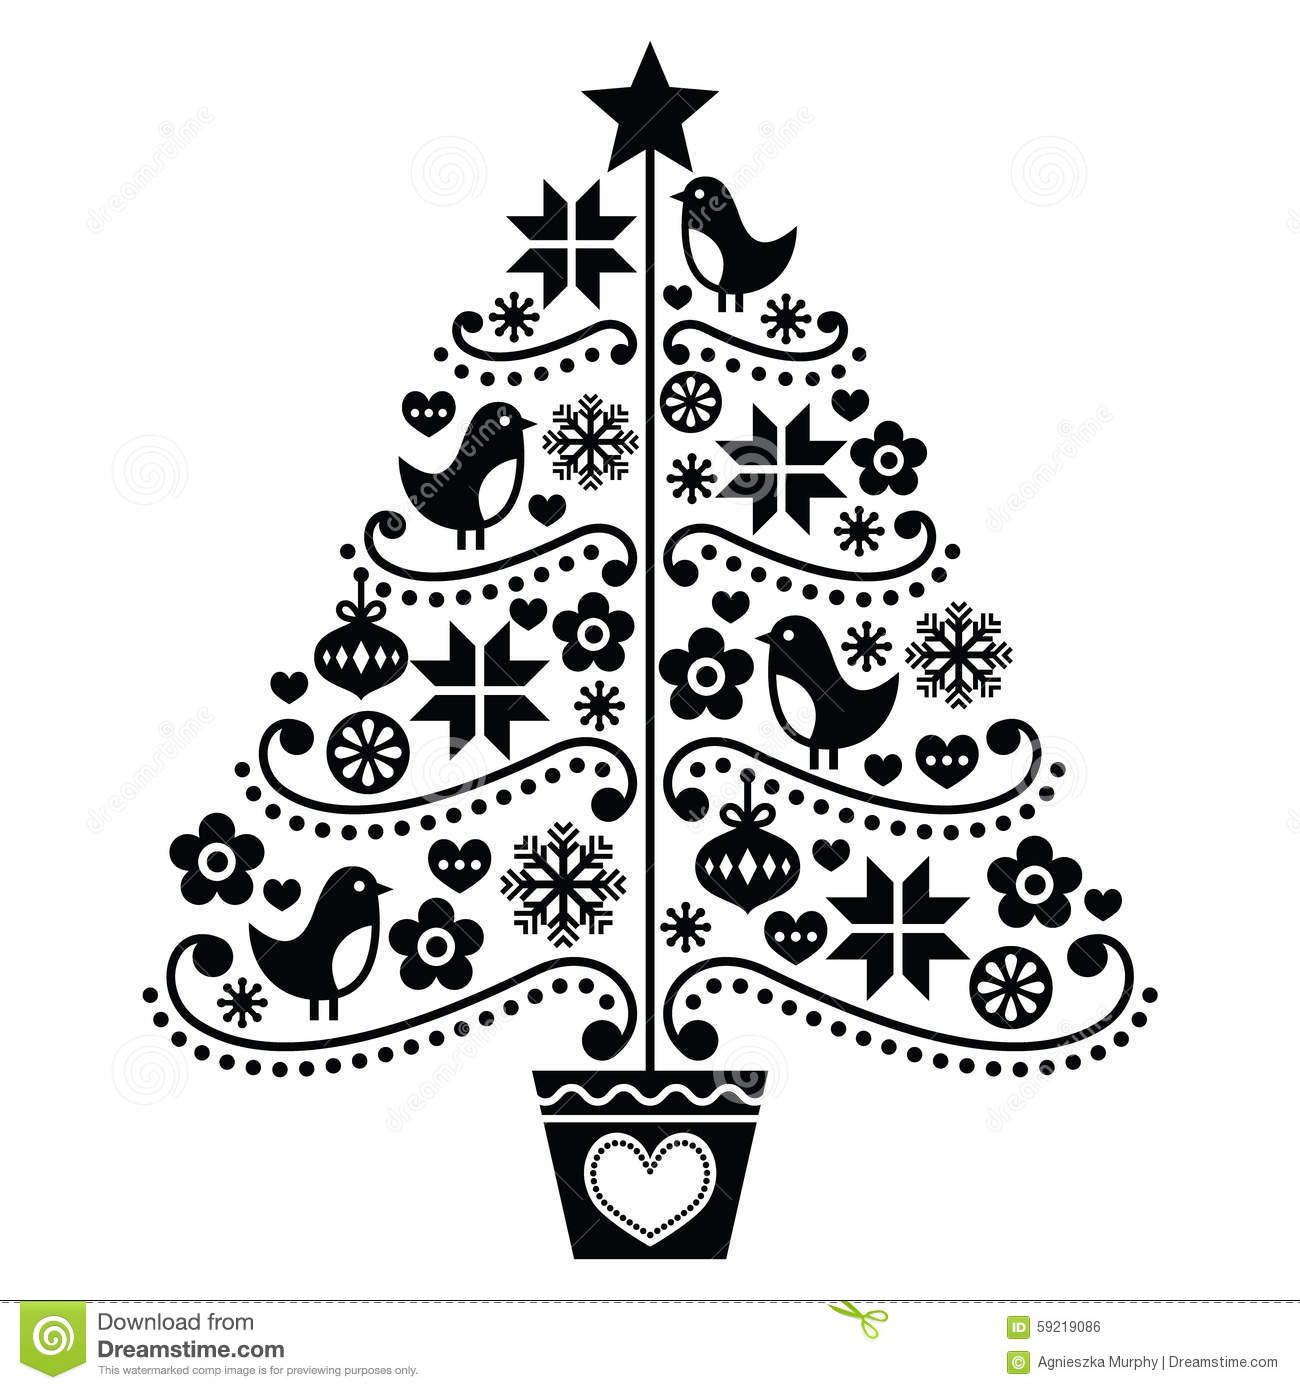 Immagine Stock Libera Da Diritti Modello Anatomico Tridimensionale Del Braccio Umano Dentro Image5561586 also Stock Photo Christmas Tree Design Folk Style Birds Flowers Snowflakes Retro Black Xmas Isolated White Image59219086 additionally Royalty Free Stock Photos Shirt Image4566738 further Stock Photography Architectural Symbol Image10978612 in addition Stock Illustration Woman Body Front Back Side View Image42372873. on subscription based business model